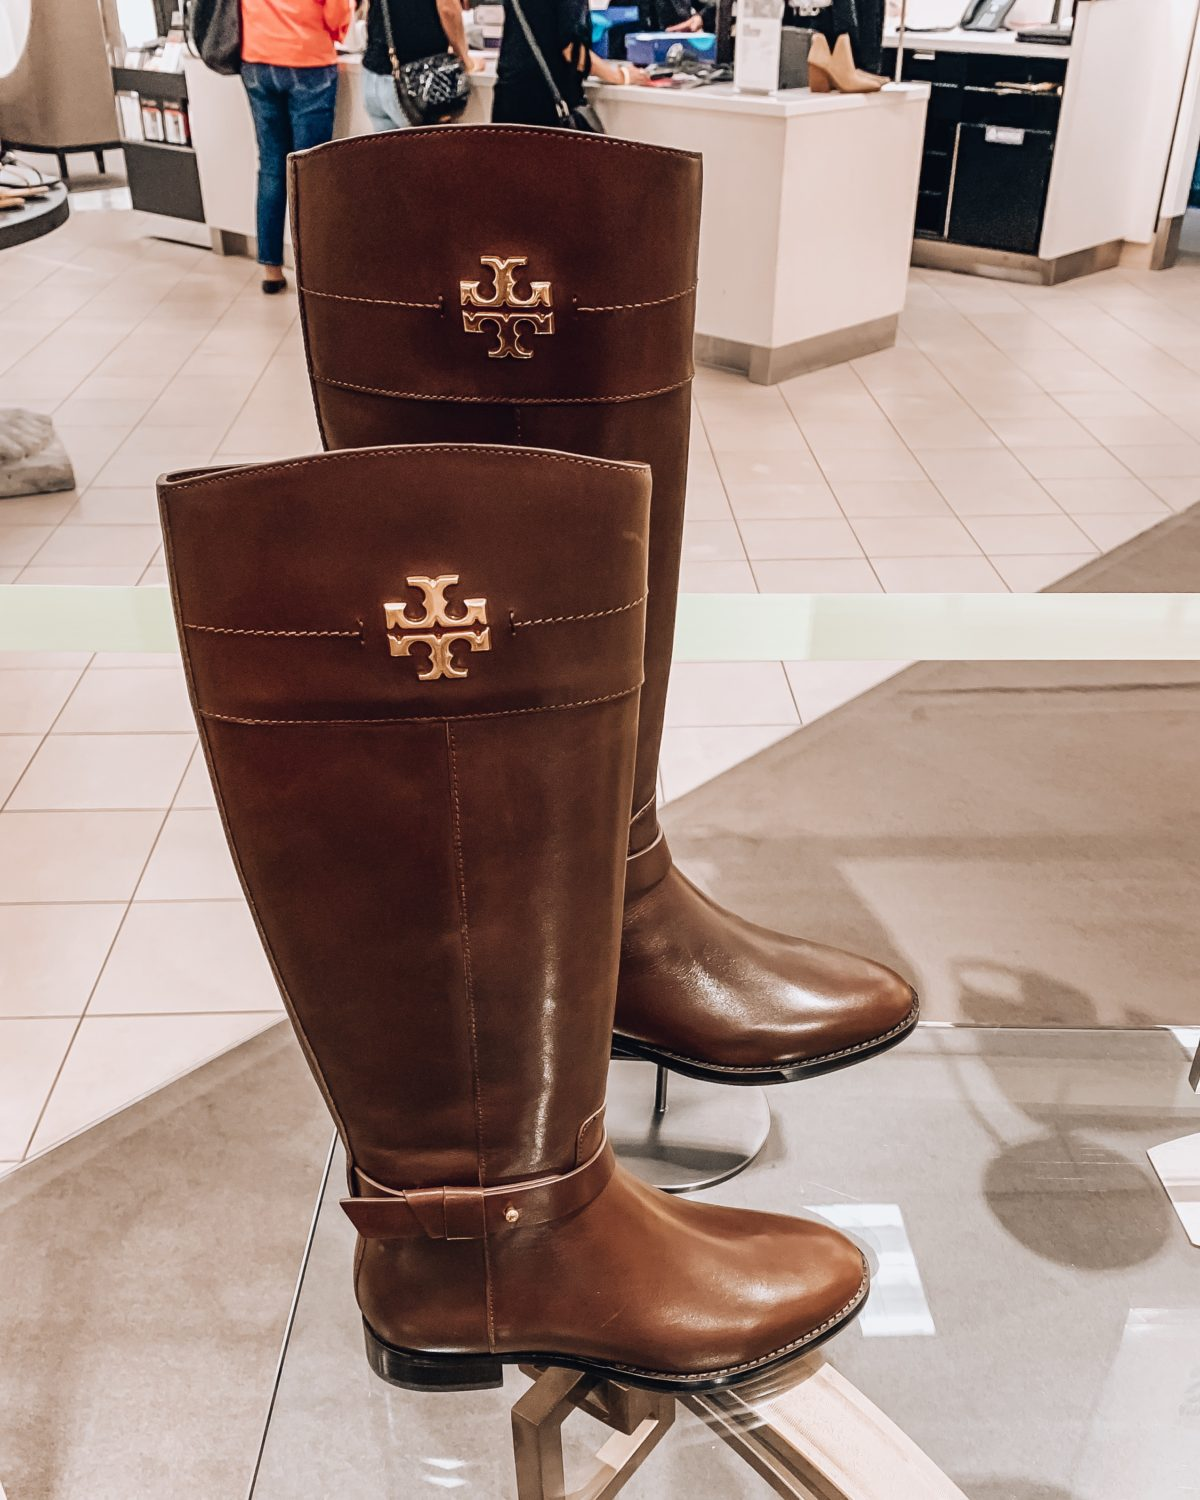 Nordstrom Anniversary Sale Tory Burch riding boots